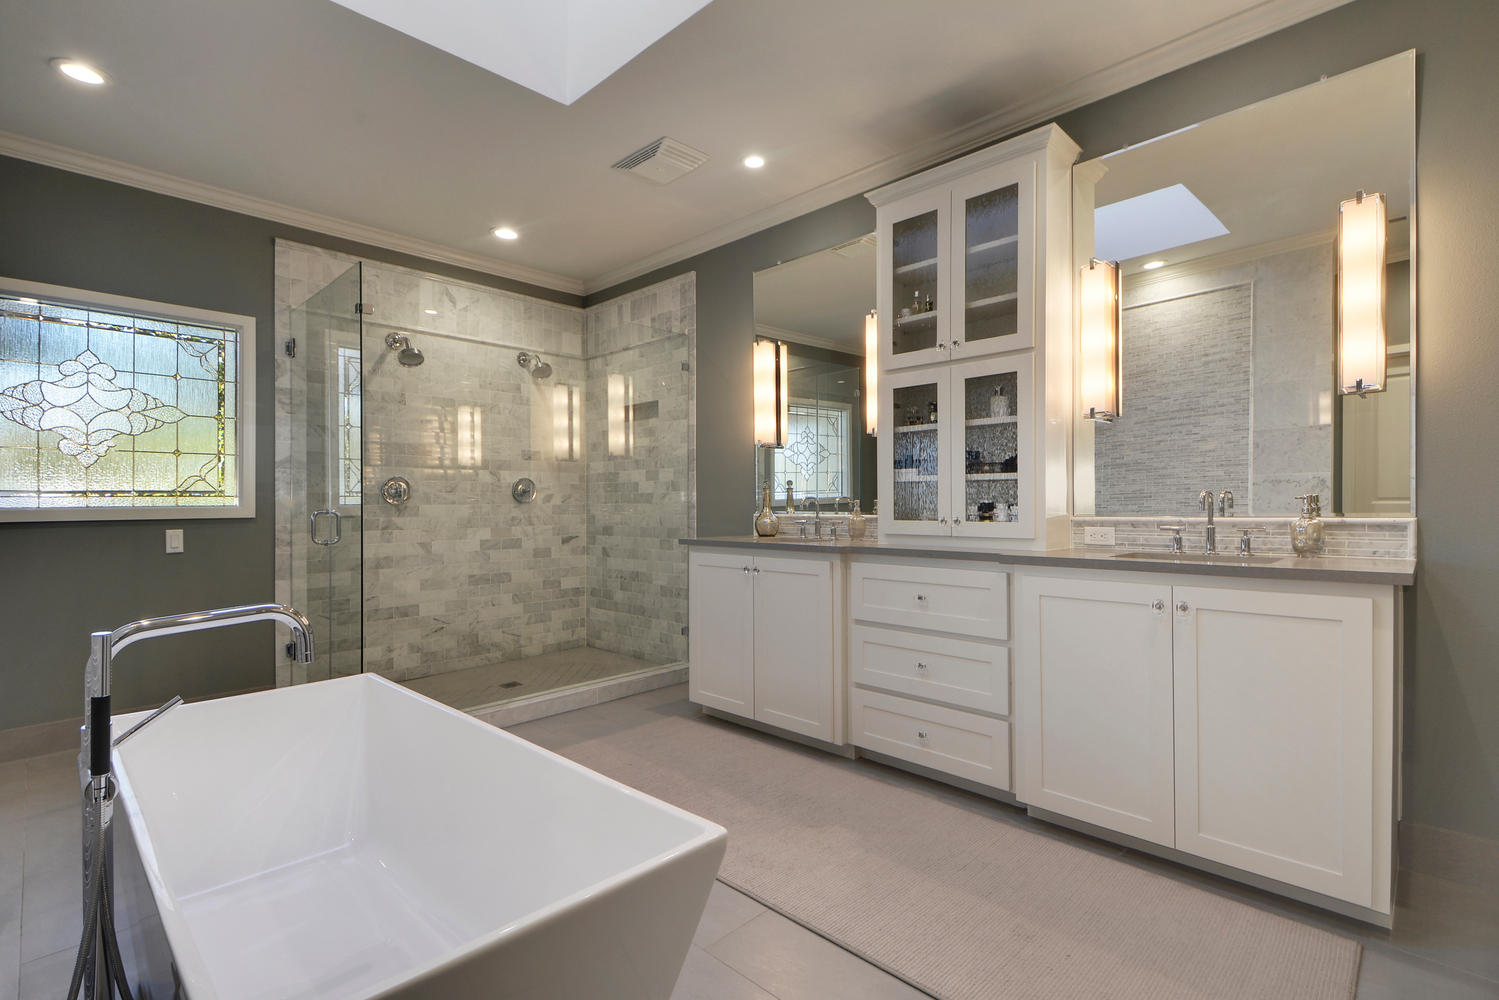 Transitional bathroom style remodel